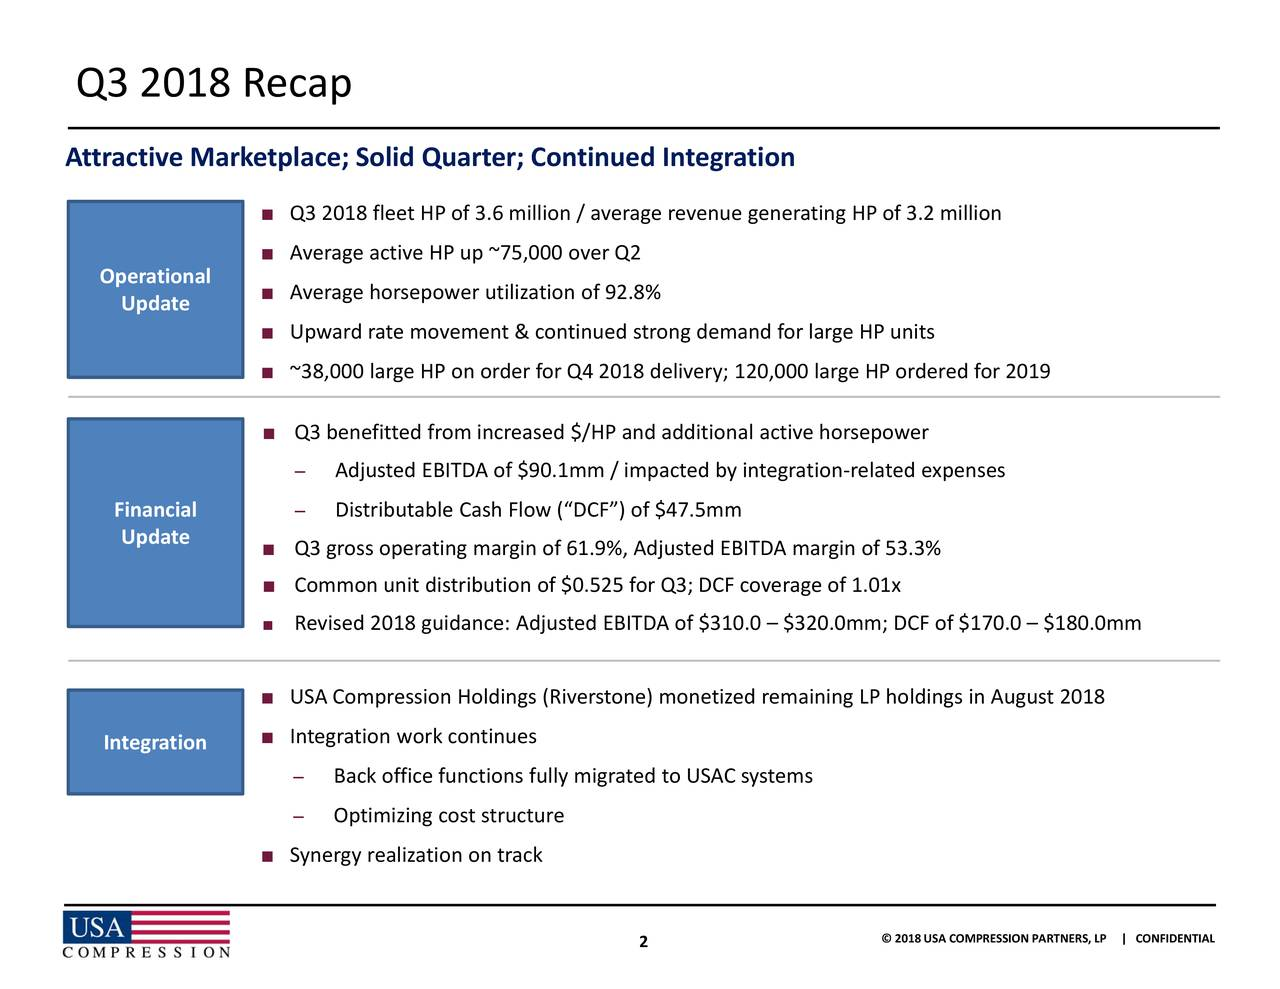 ts ldings in August 2018 wer 3.3%x of 3.2 million P ordered for 2019 © 2018 USA COMPRESSION PARTNERS, LP | CONFIDENTIAL 2 AdjustsdrbuItableCf sh lowm D mBackO ffmeifnngtiot frlymurgrated to USAC systems Q3 20v18afeea pi e 3 e l75 emizoer&n e tn8ued tnUSA Compression Synergy realization on trackzed remaining LP ho ■ ■ ■ ■ ■ ■ ■ ■ ■ ■ ■ ■ Update Update Operational Financial Integration Q3 2018 Recap Attractive Marketplace; Solid Quarter; Continued Integration